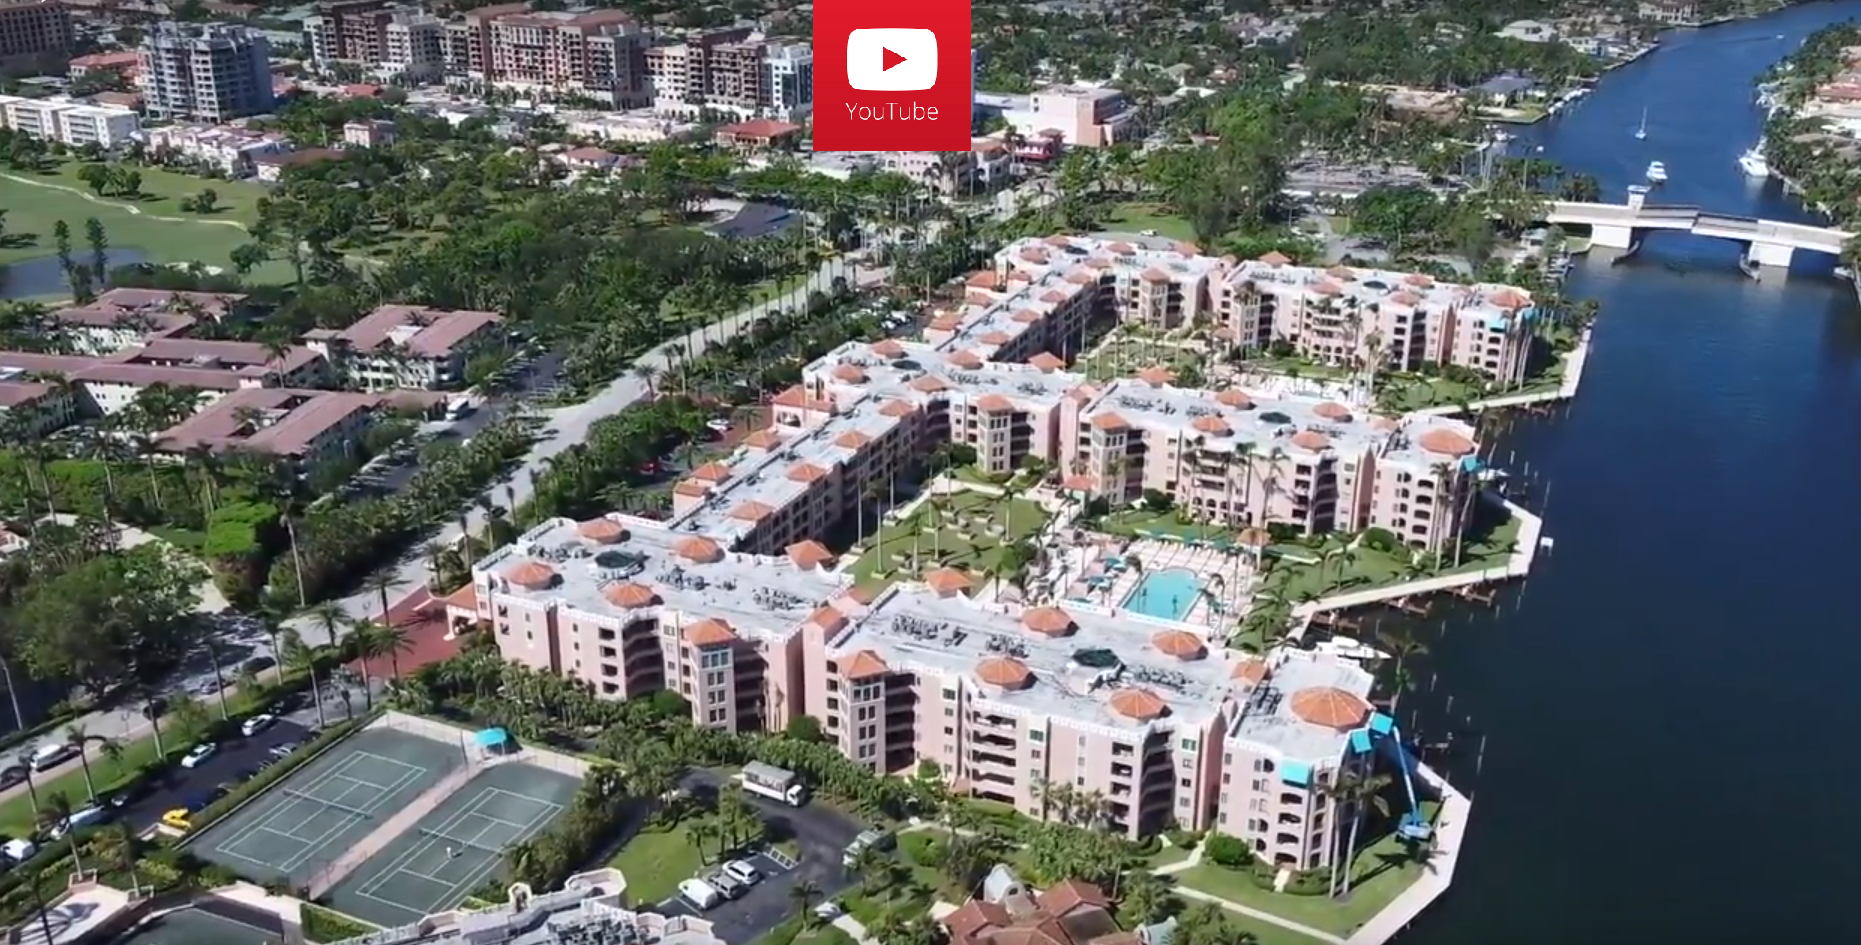 Click the image to see the video of 100-120-140 SE 5th Avenue Boca Raton FL 33432 Mizner Court luxury condos for sale